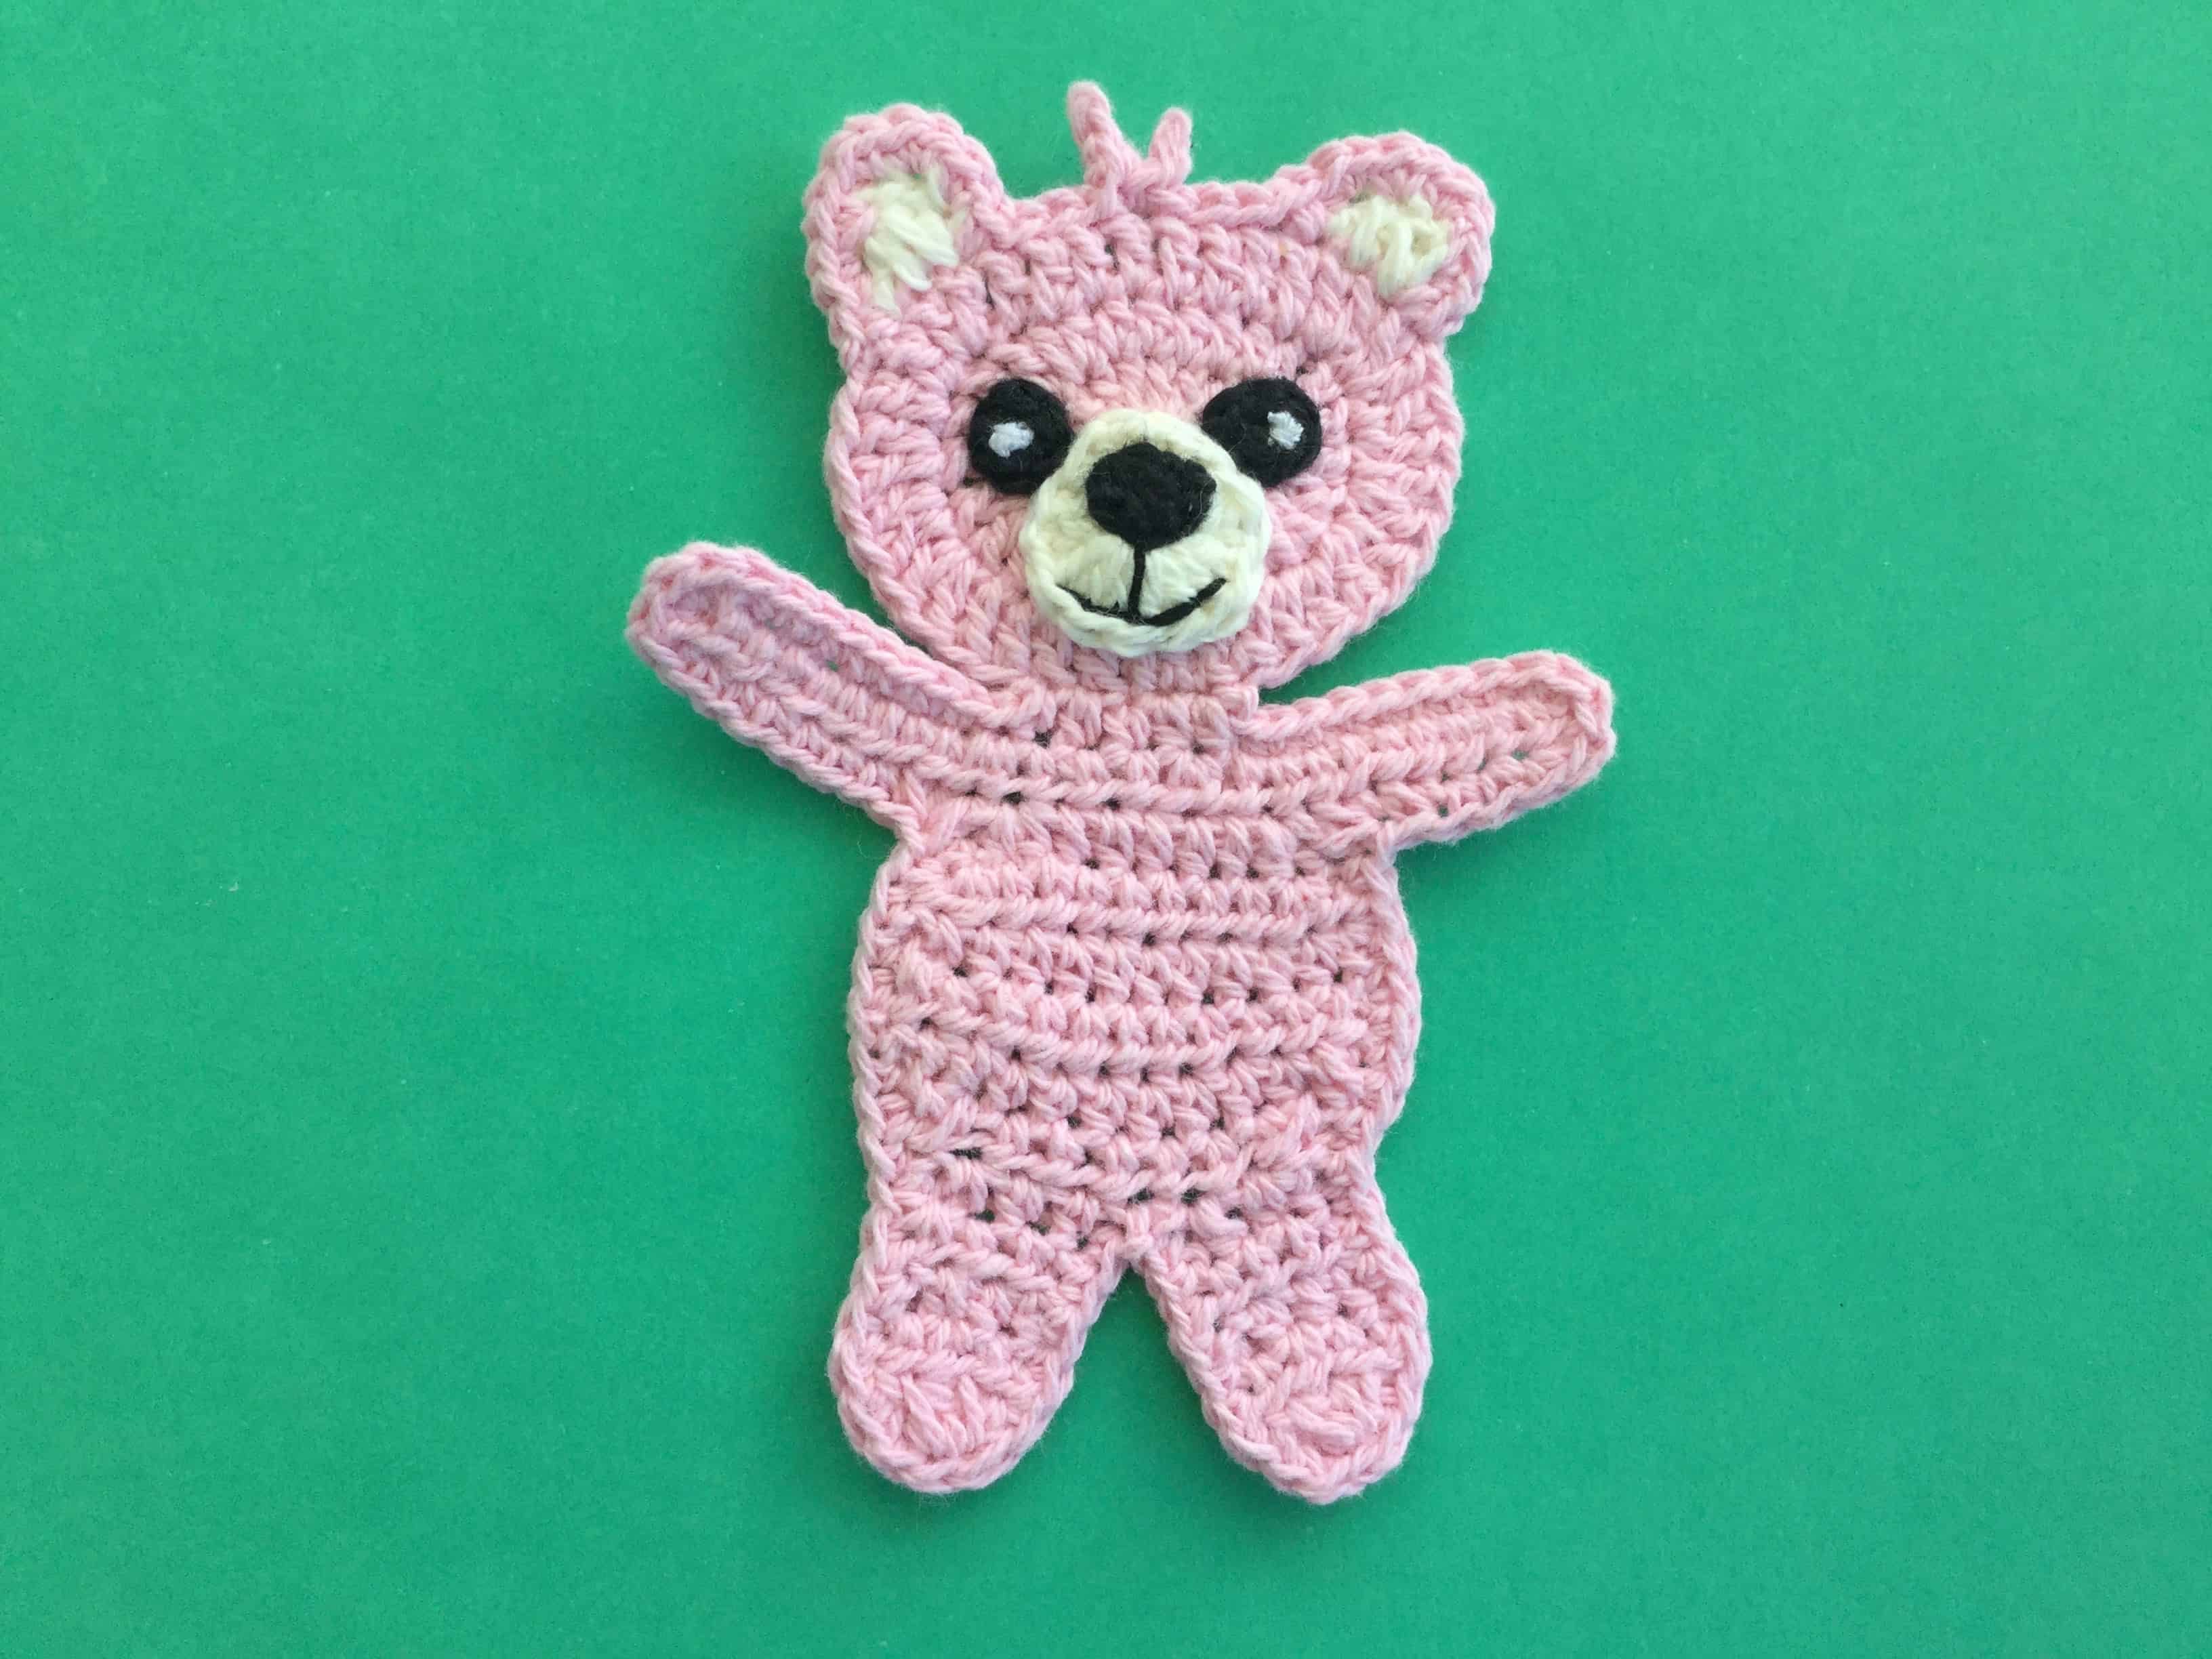 Finished crochet child teddy bear landscape